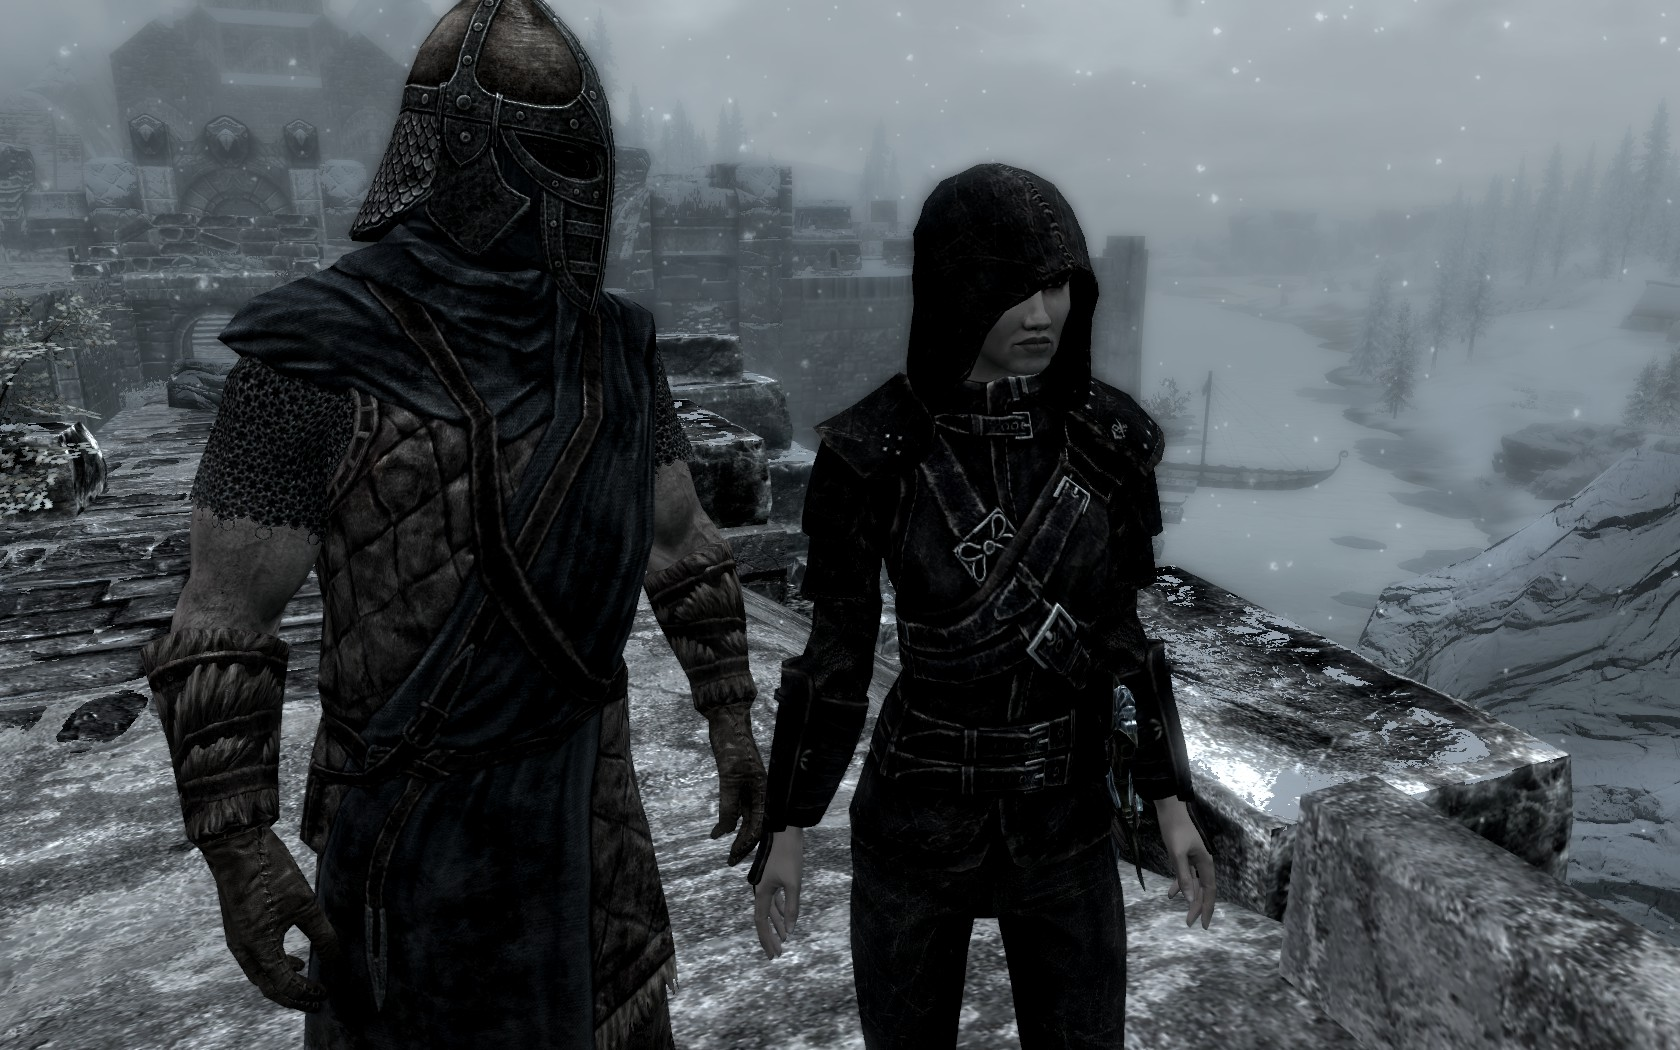 A screenshot from Skyrim shows a Windhelm guard almost, but not quite, holding the hand of a Breton woman in thieve's armor.